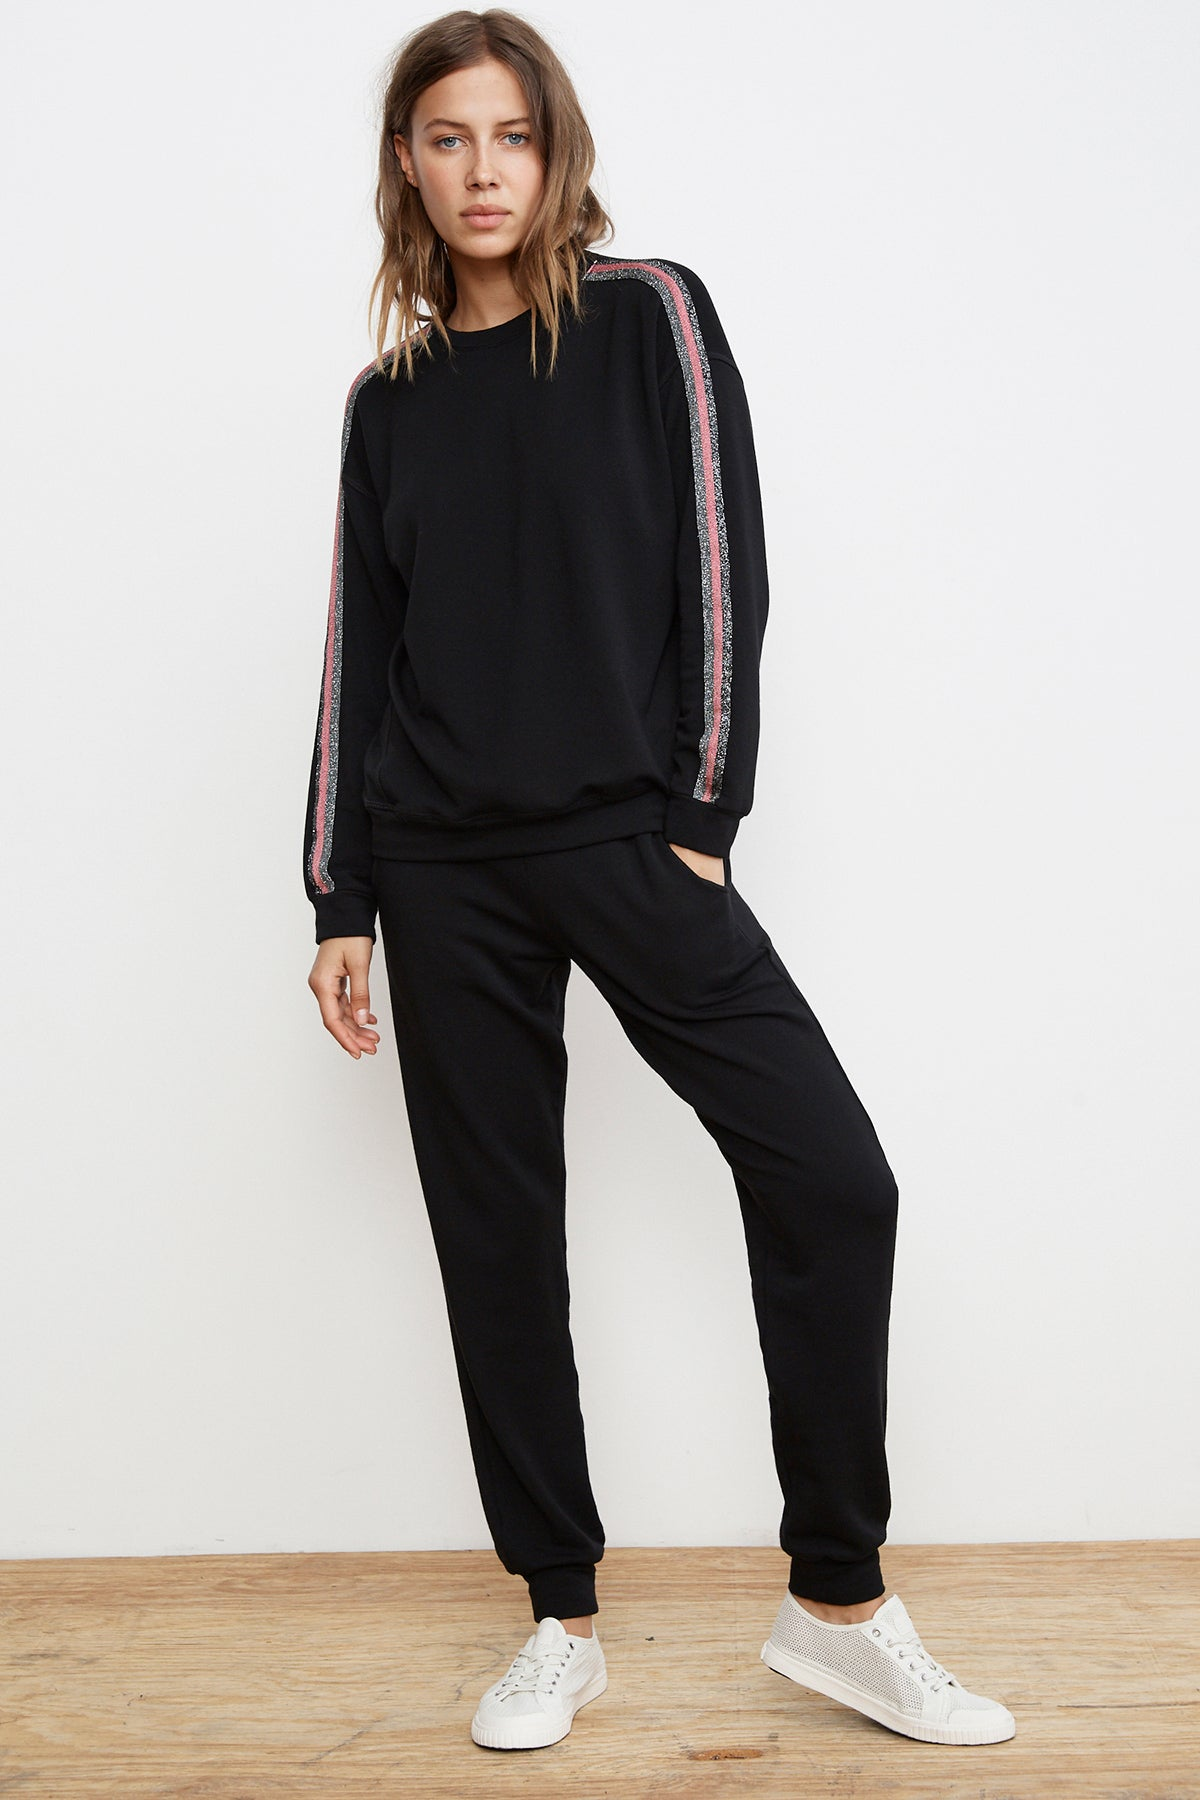 COLBY METALLIC TRIM LUXE FLEECE PULLOVER TOP